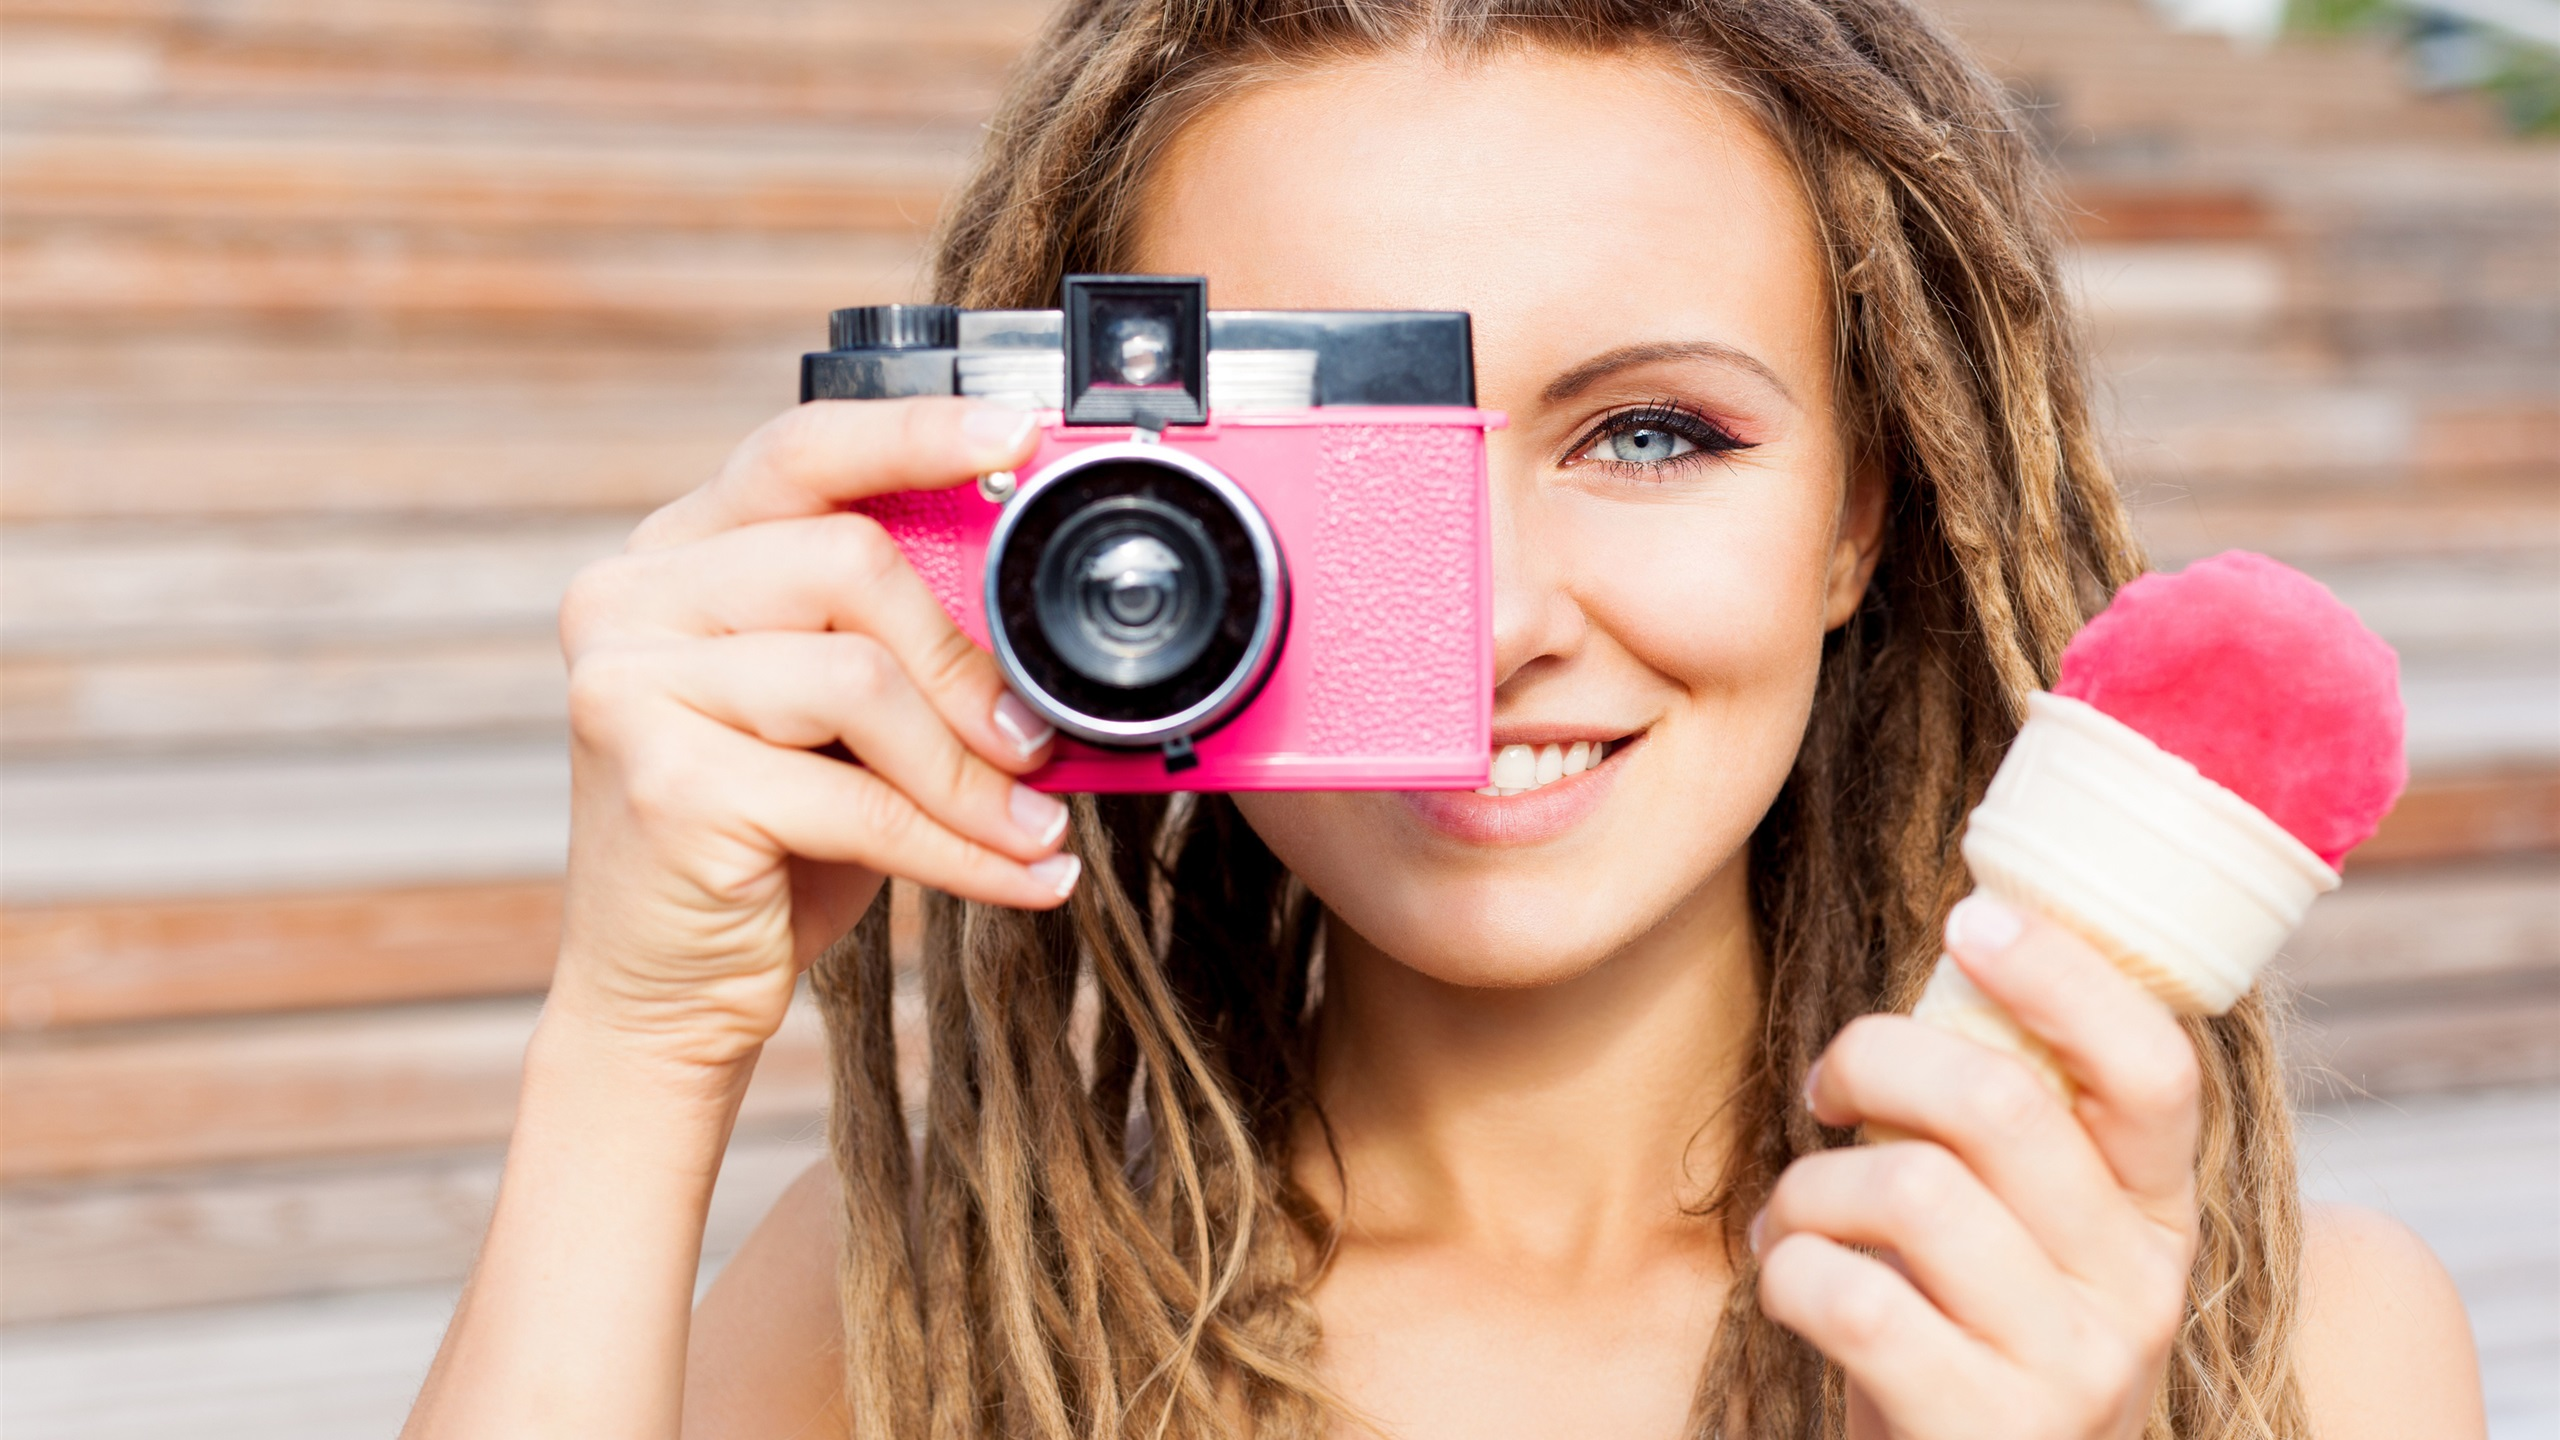 Hommade hien cameras young girls